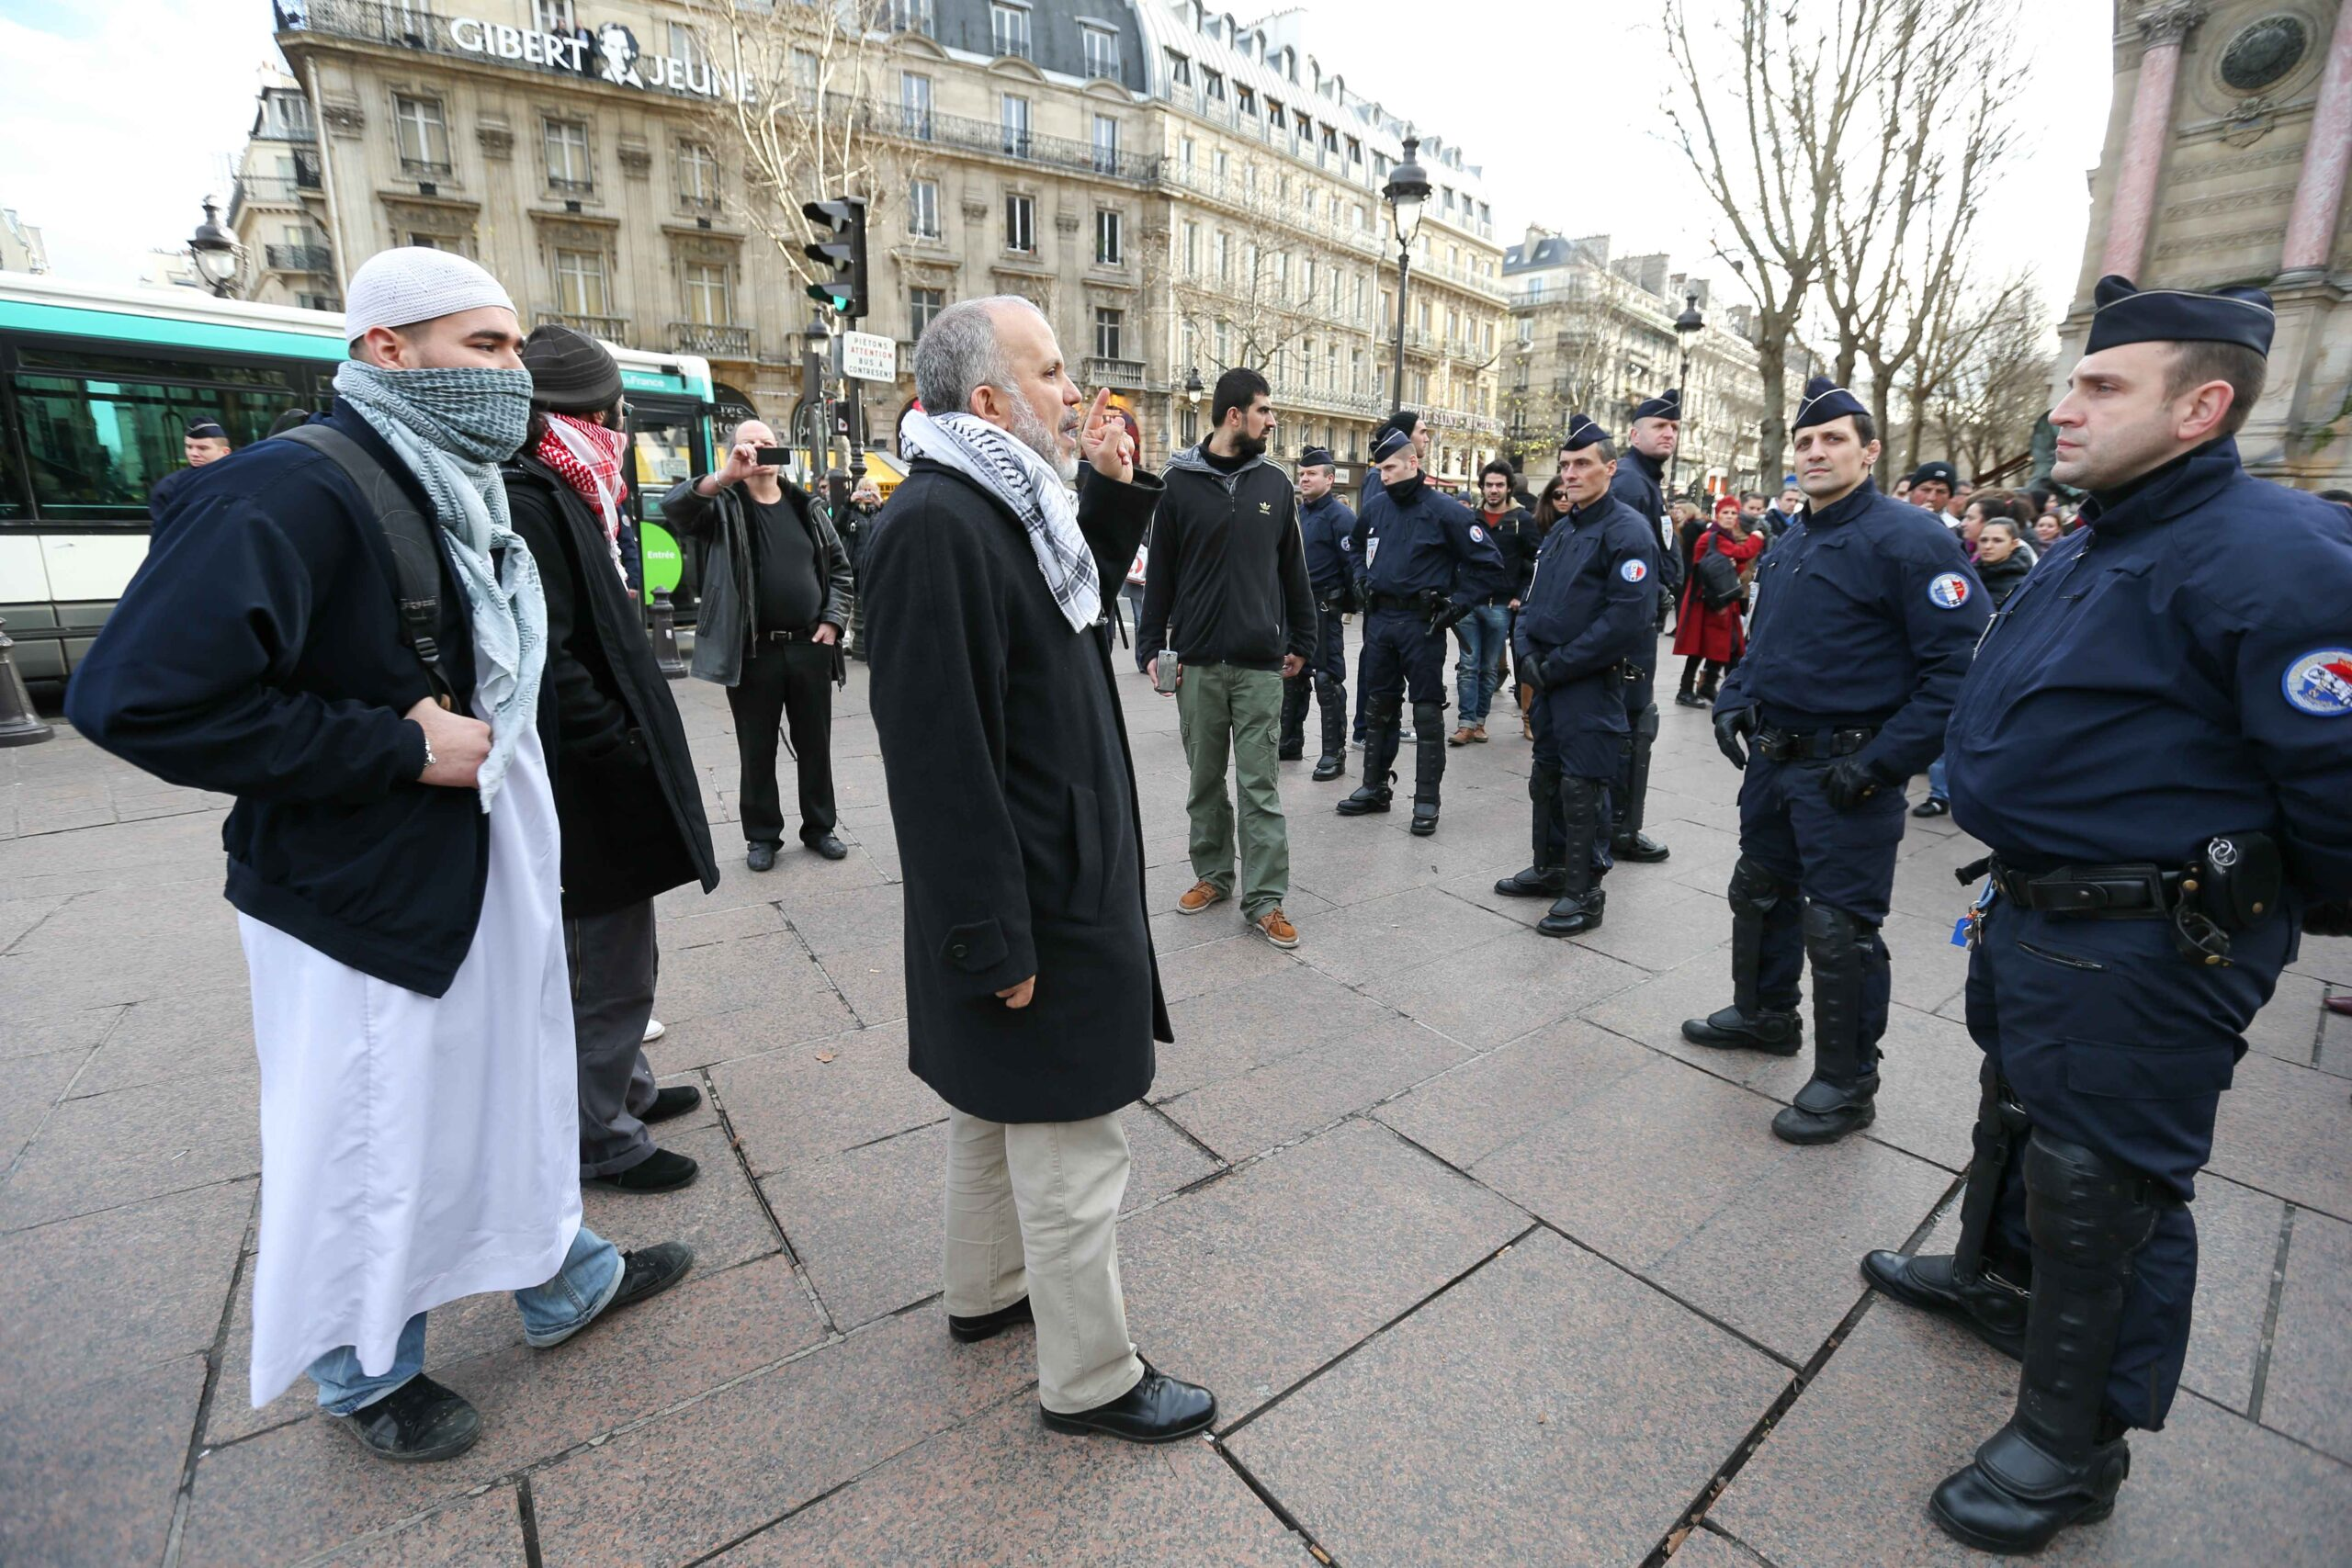 This picture taken on December 29, 2012, in Paris, shows the President of the Cheikh Yassine collective Abdelhakim Sefrioui (C with a white djellaba) protesting in front of French anti-riot gendarmes to support Palestine.Abdelhakim Sefrioui is involved in